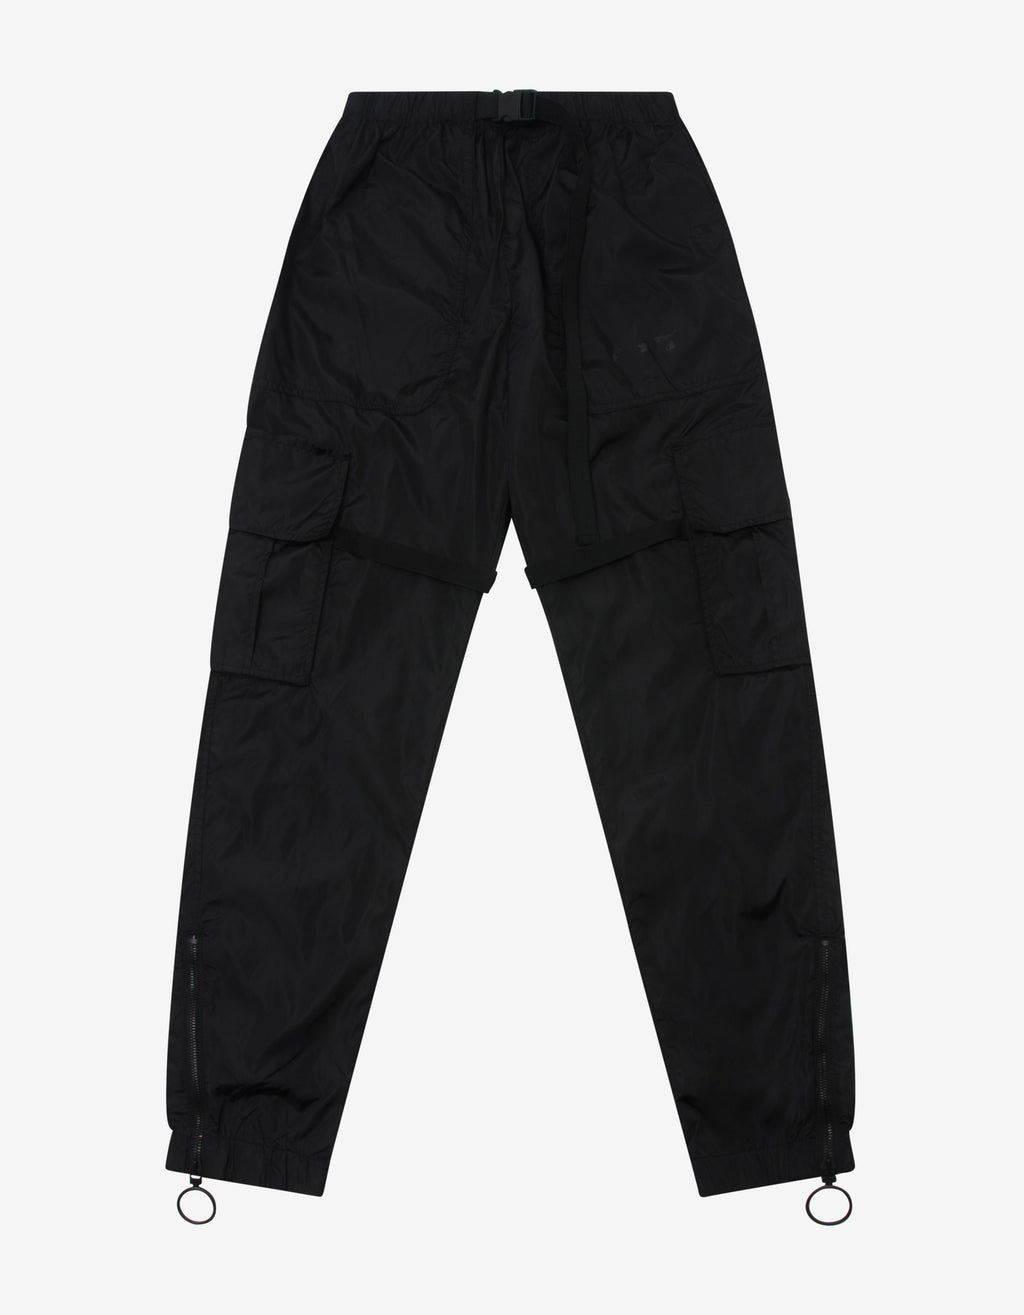 Black Arrow Parachute Cargo Pants